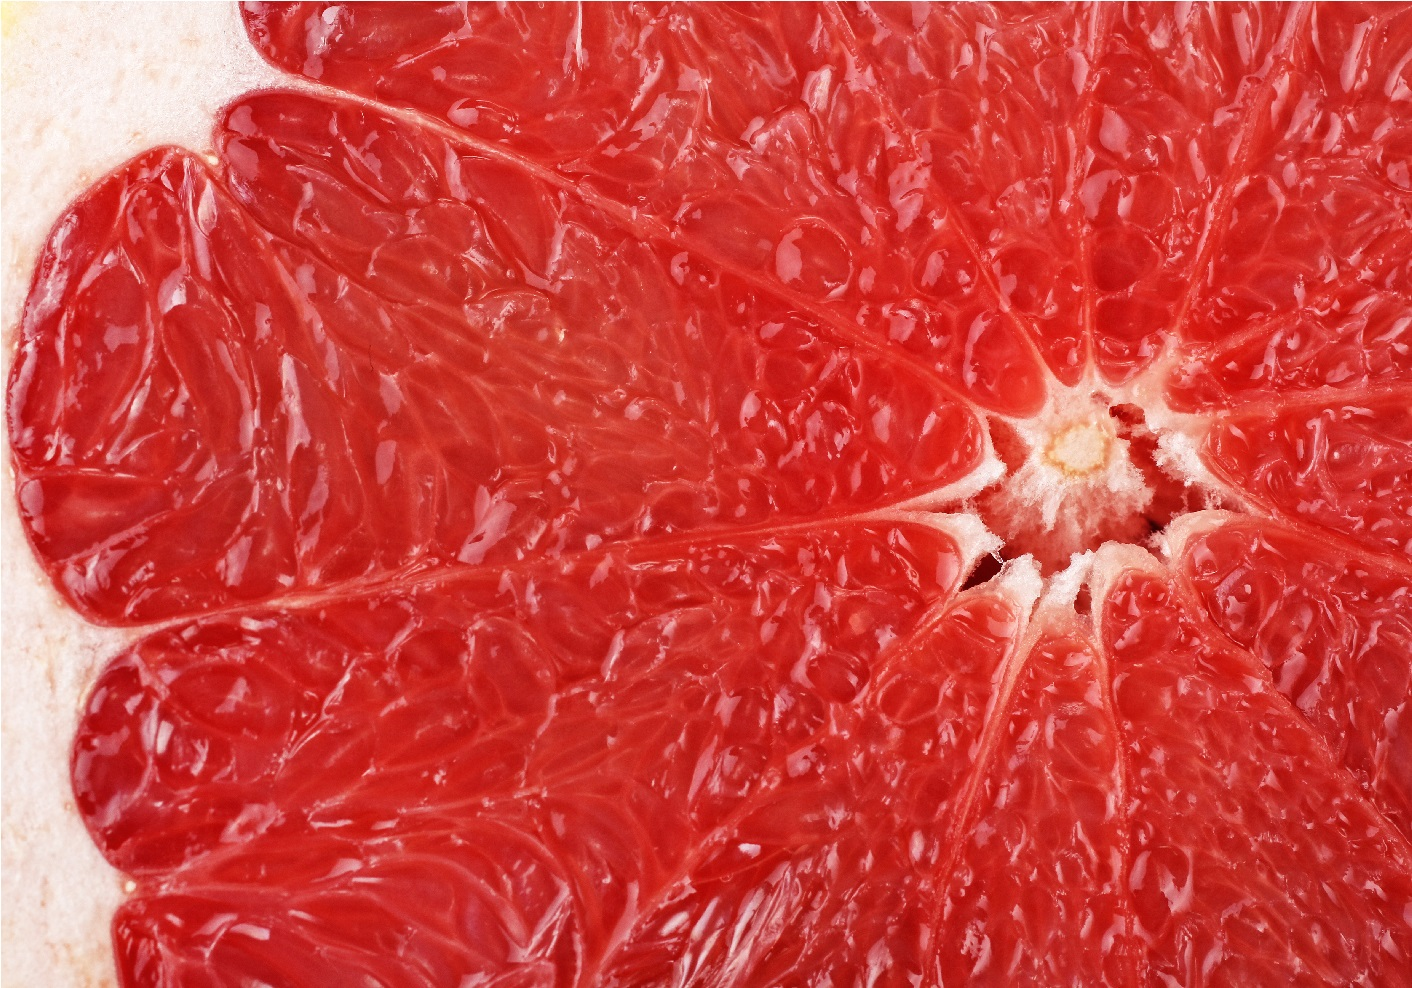 6 Nutrients That Make Rio Red Grapefruits So Good for You!